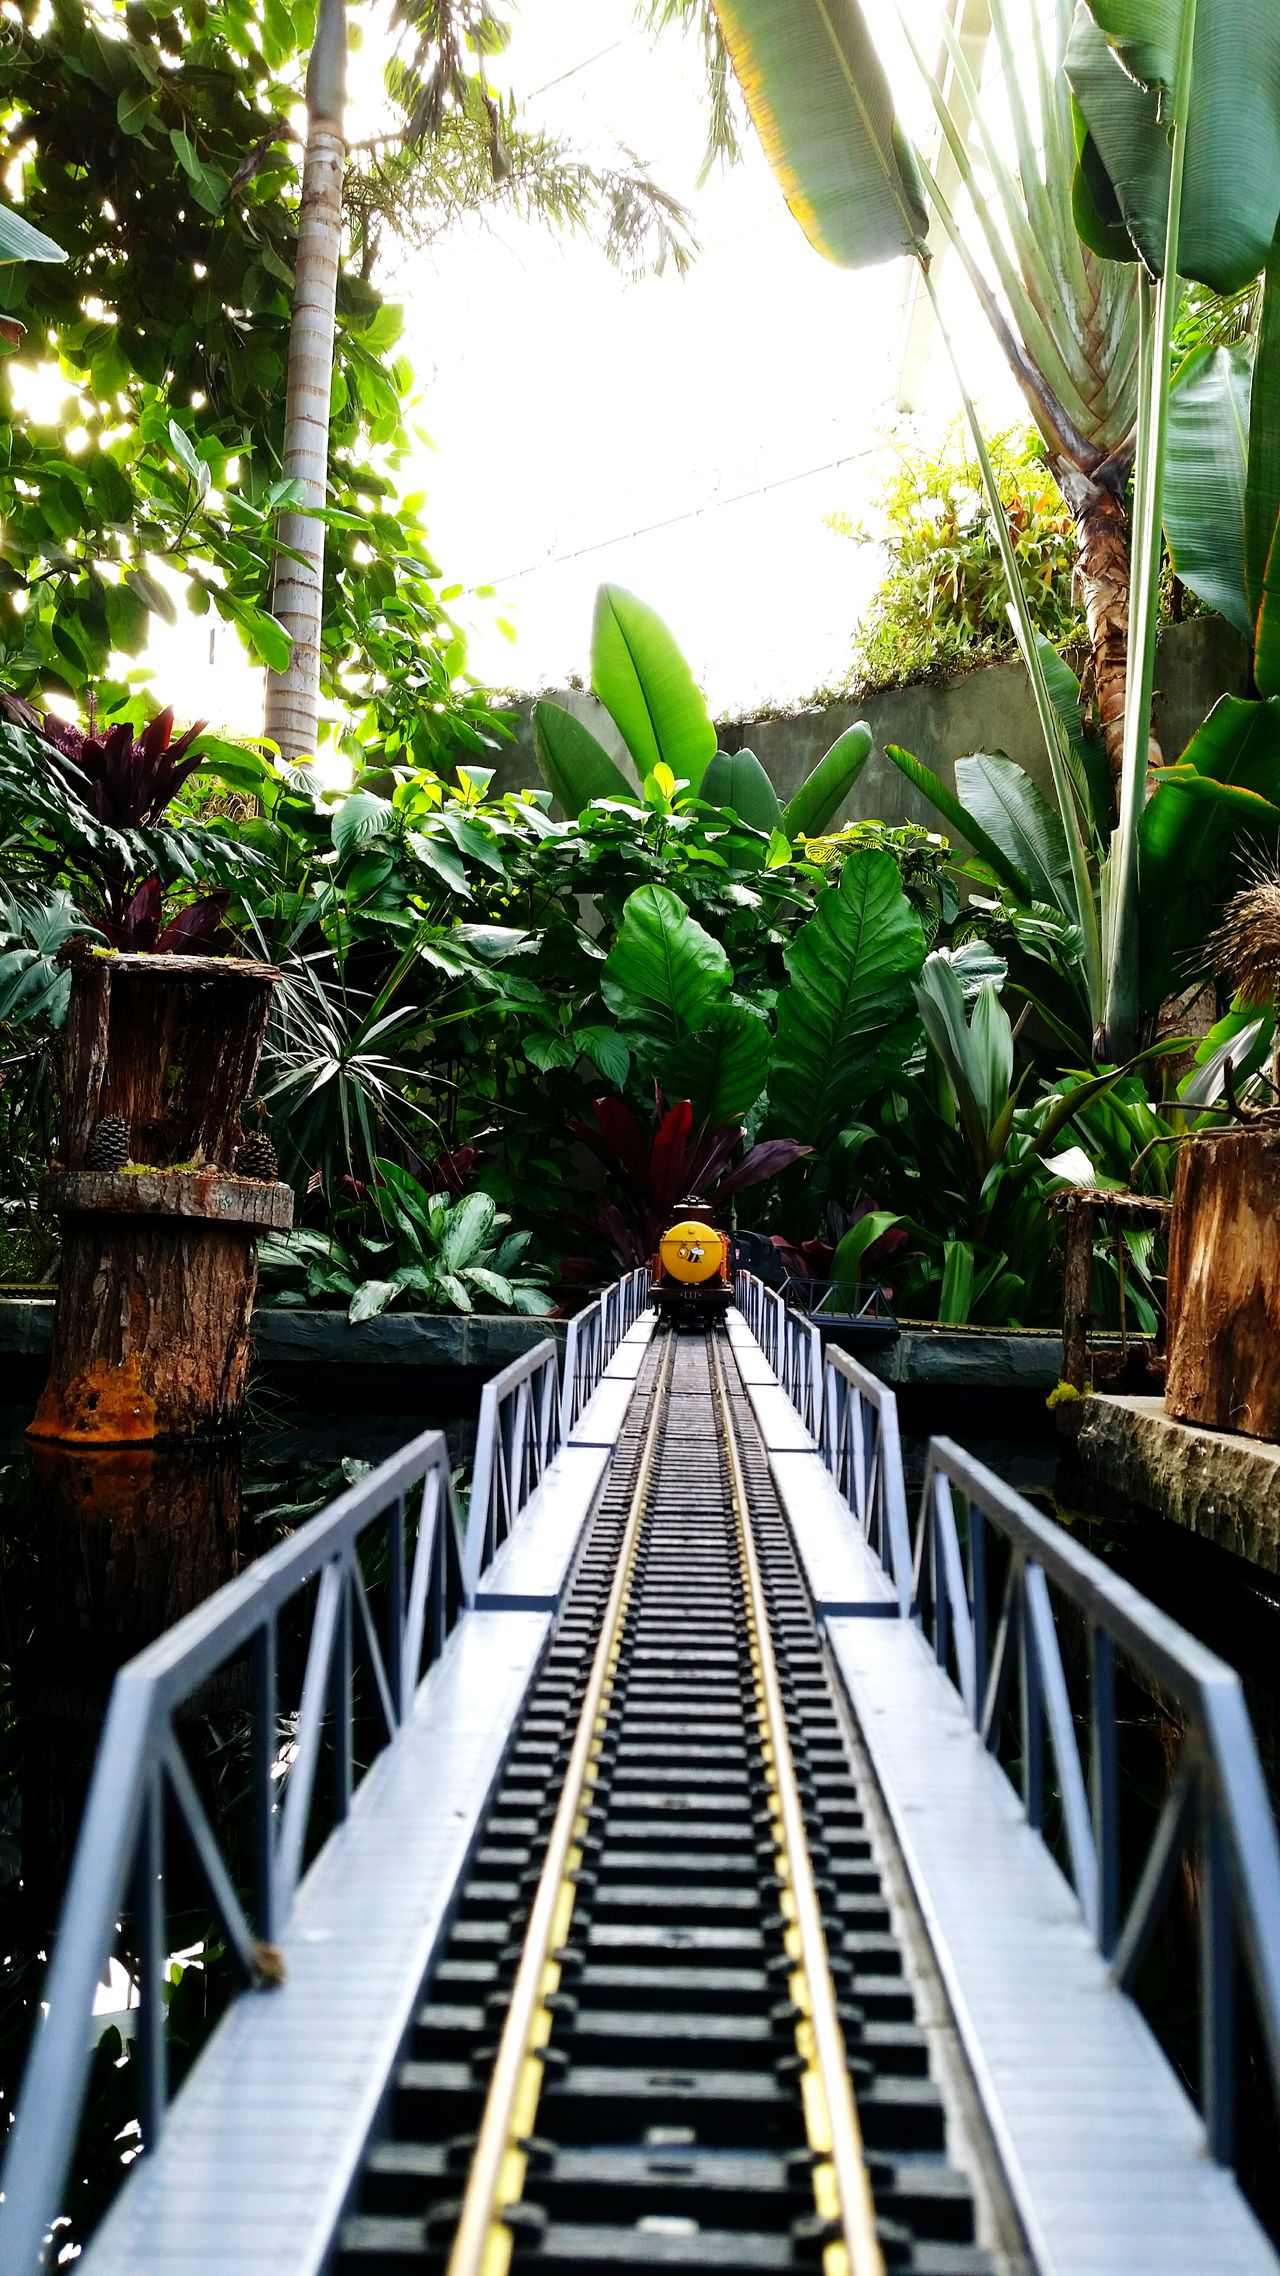 Anythingfortheshot Risky Business Risky Shots Train Toytrain On Black Water EyeEm Nature LoverBlack Water Gardens Botanical Gardens Conservatory Beauty Pivotal IdeasBetter Look Twice Showcase: January